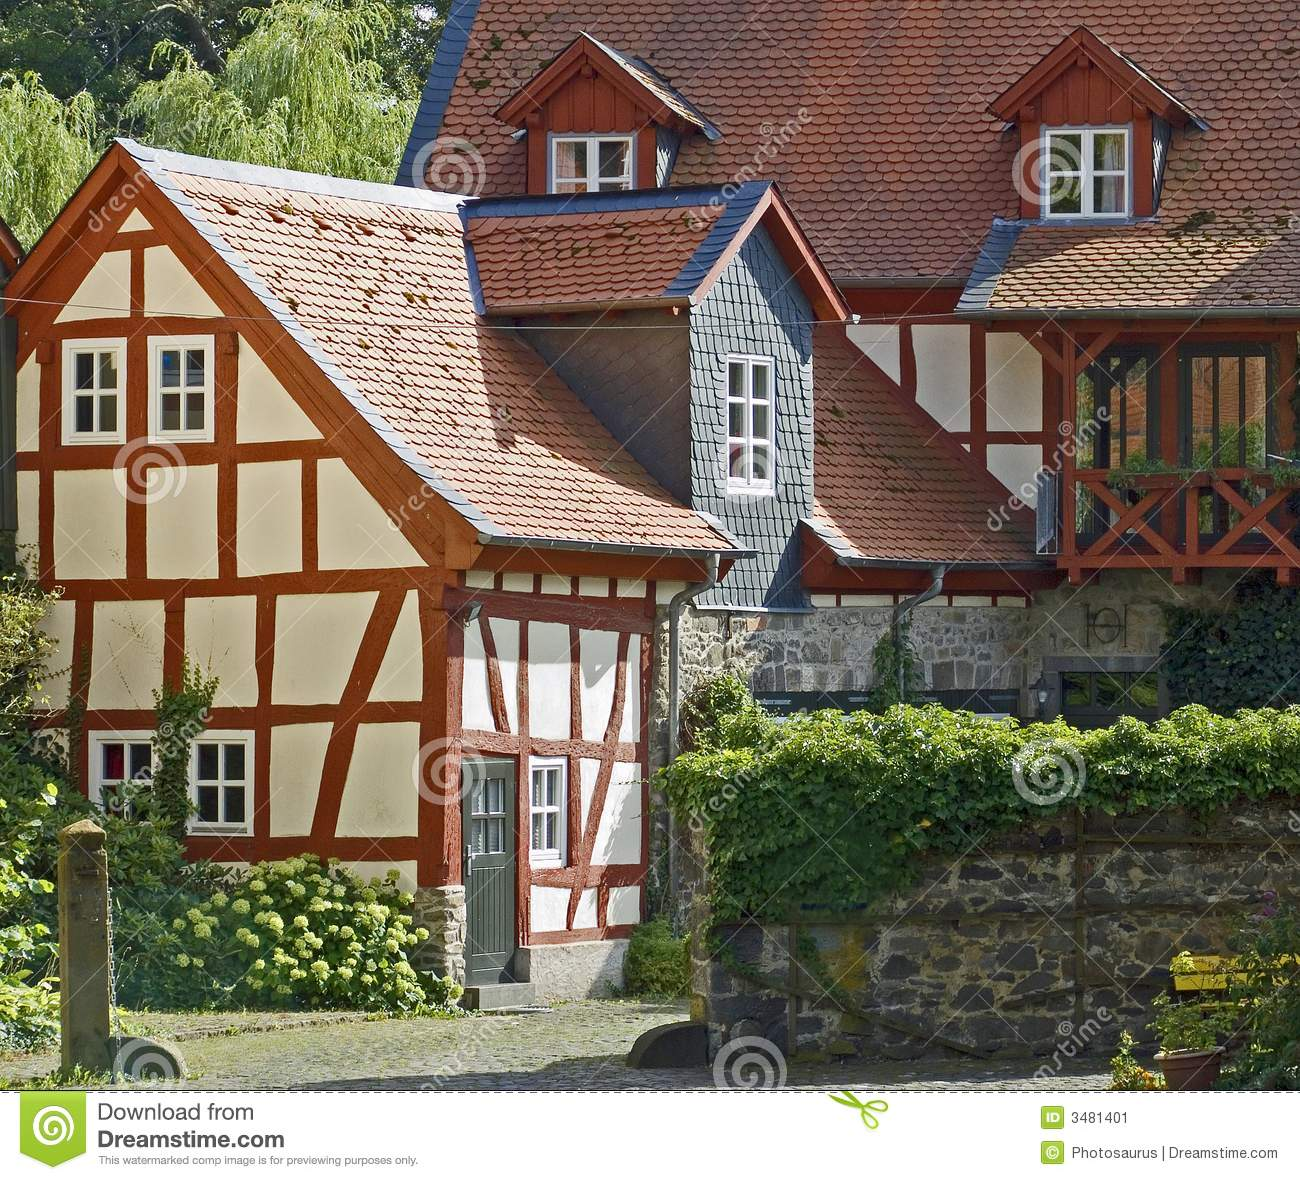 German farm houses